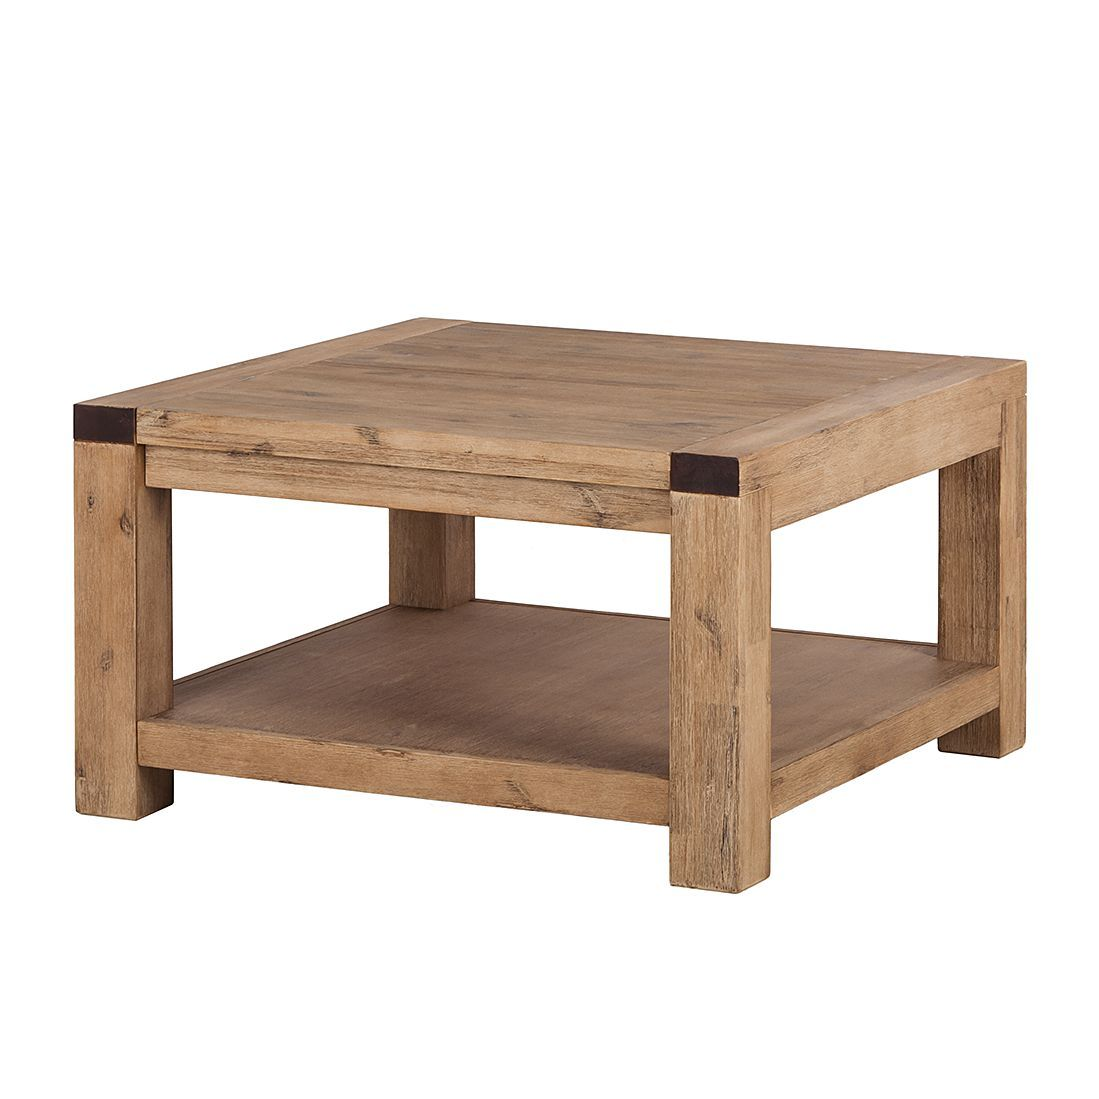 Couchtisch Ahorn Quadratisch Couchtisch Alenja Ii Living Inspiration Table Furniture Table